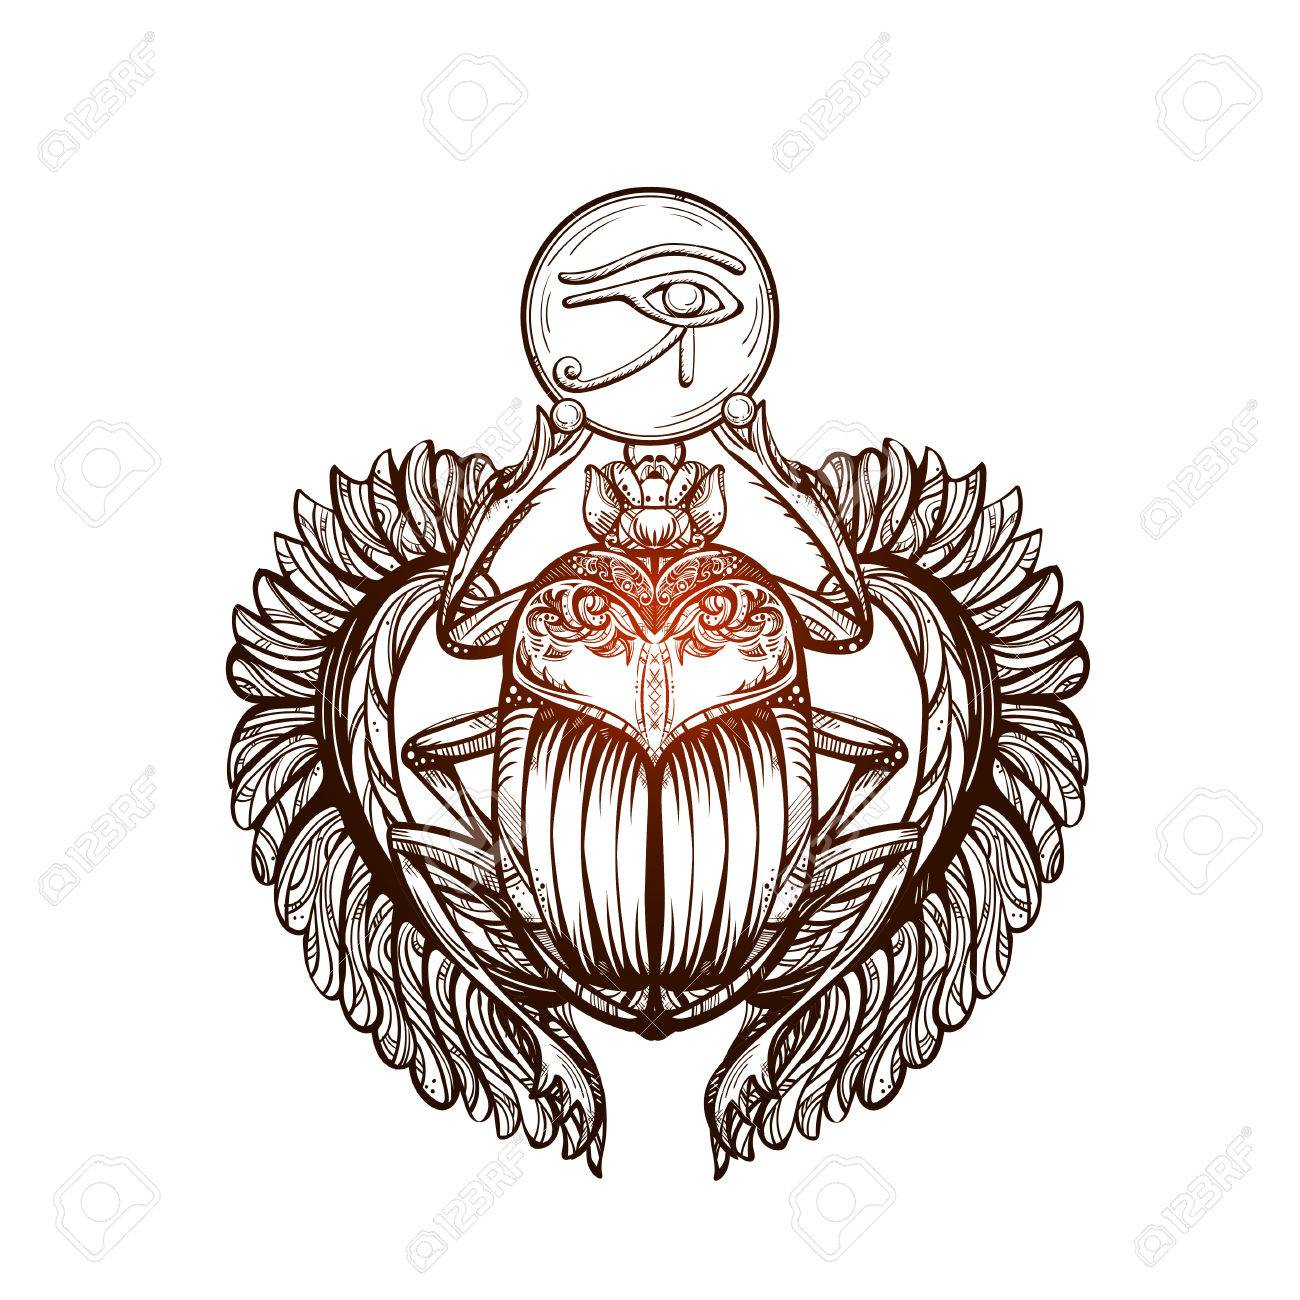 Isolated vector tattoo image black scarab beetleon a white the ancient spiritual symbol of egypt god khepri isolated vector tattoo image black scarab beetleon a white background carabaeus sacer the ancient biocorpaavc Gallery